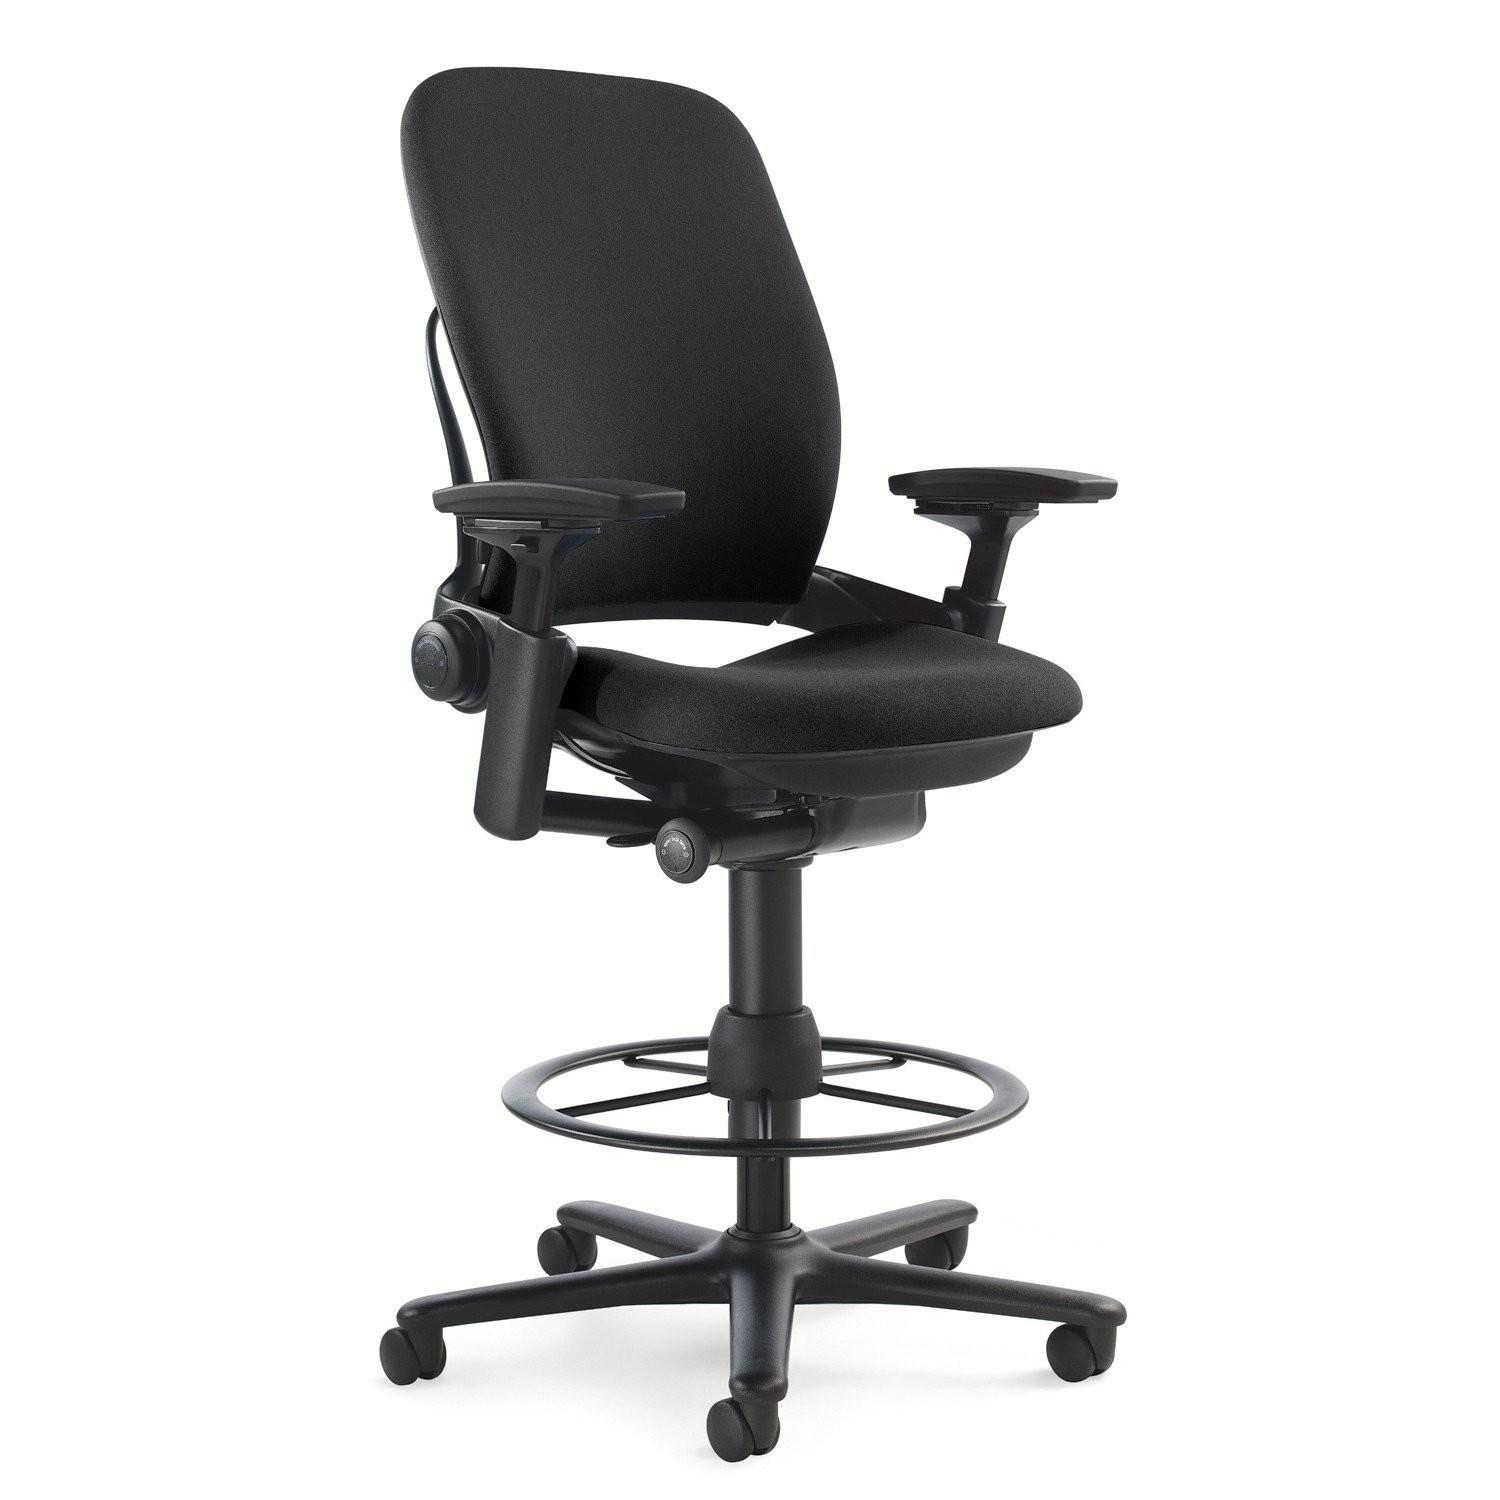 Selecting Comfortable Tall Office Chair